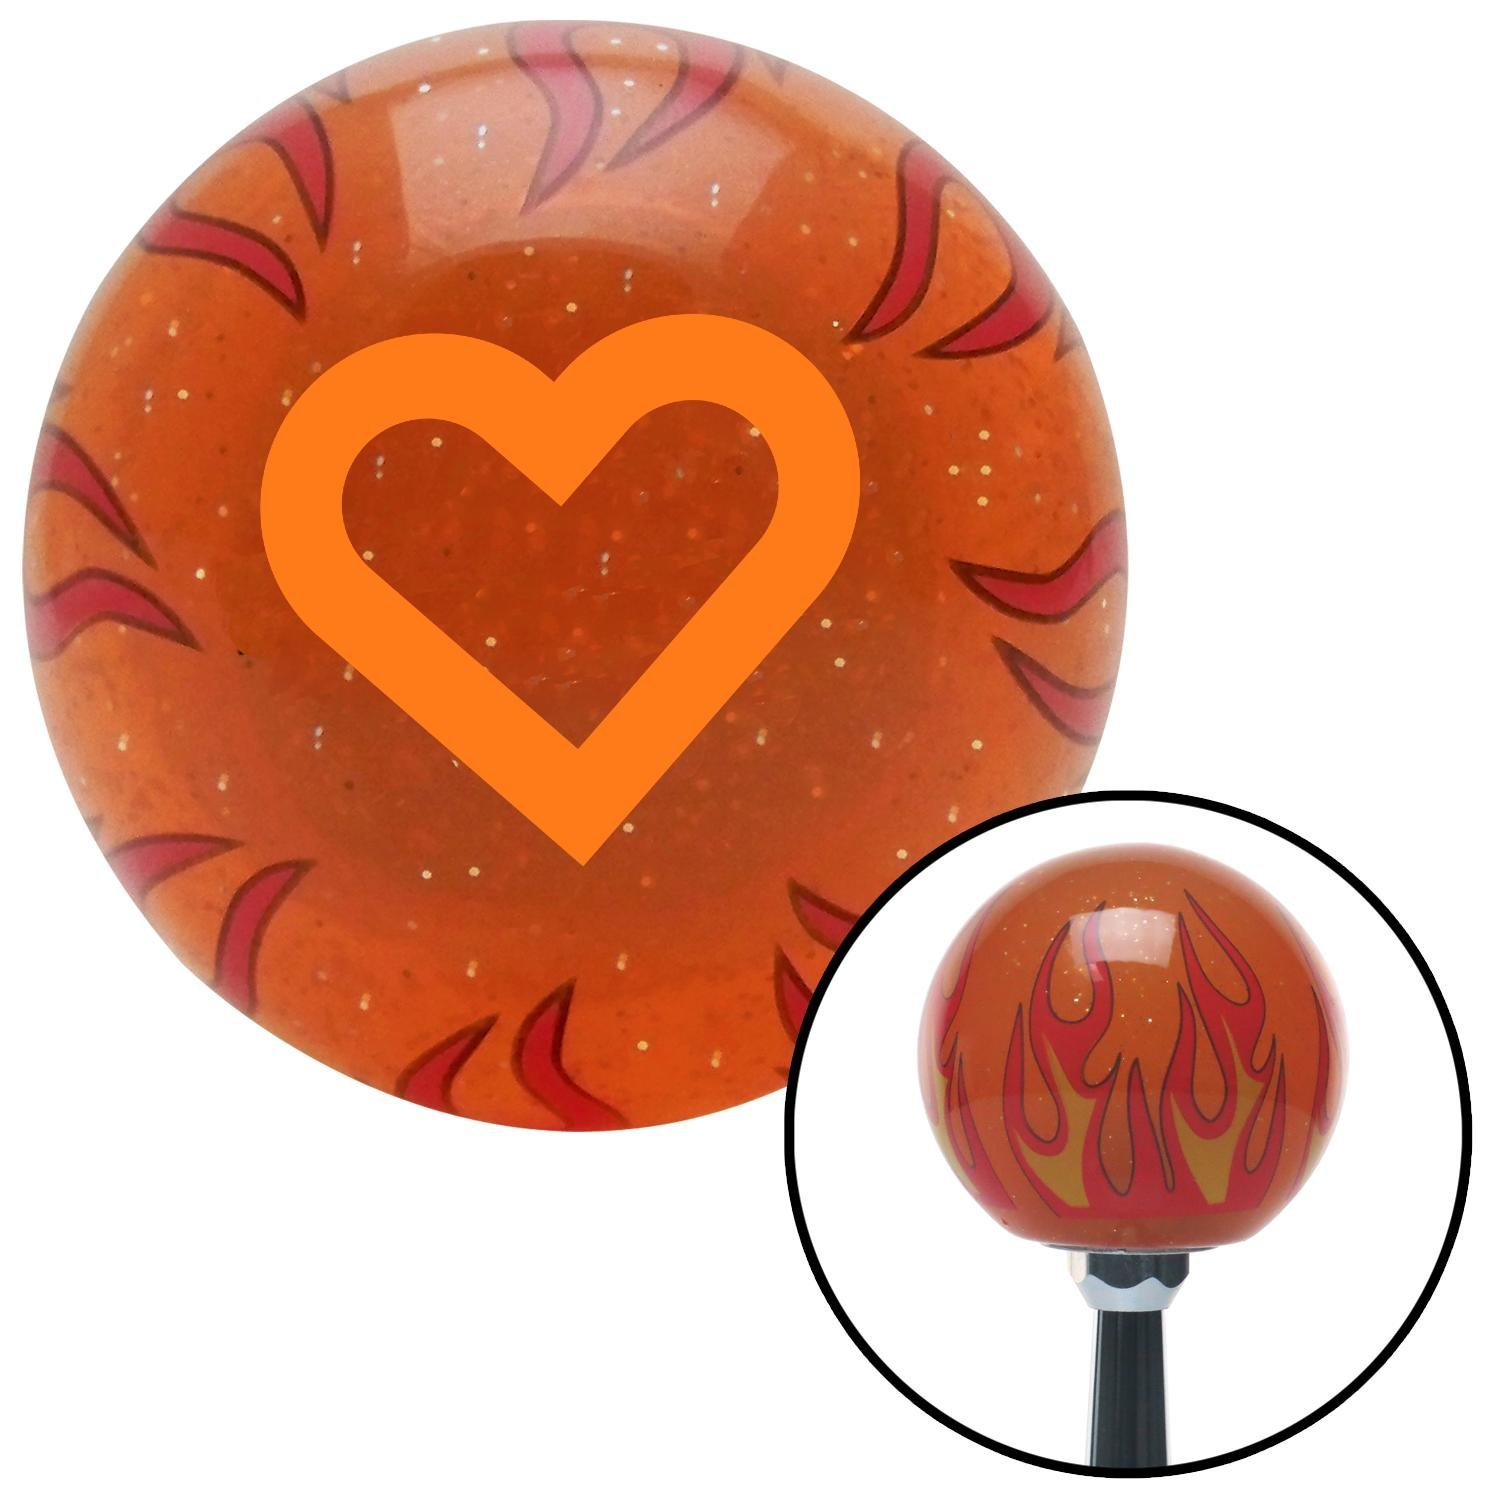 Orange Fat Outlined Heart American Shifter 253584 Orange Flame Metal Flake Shift Knob with M16 x 1.5 Insert